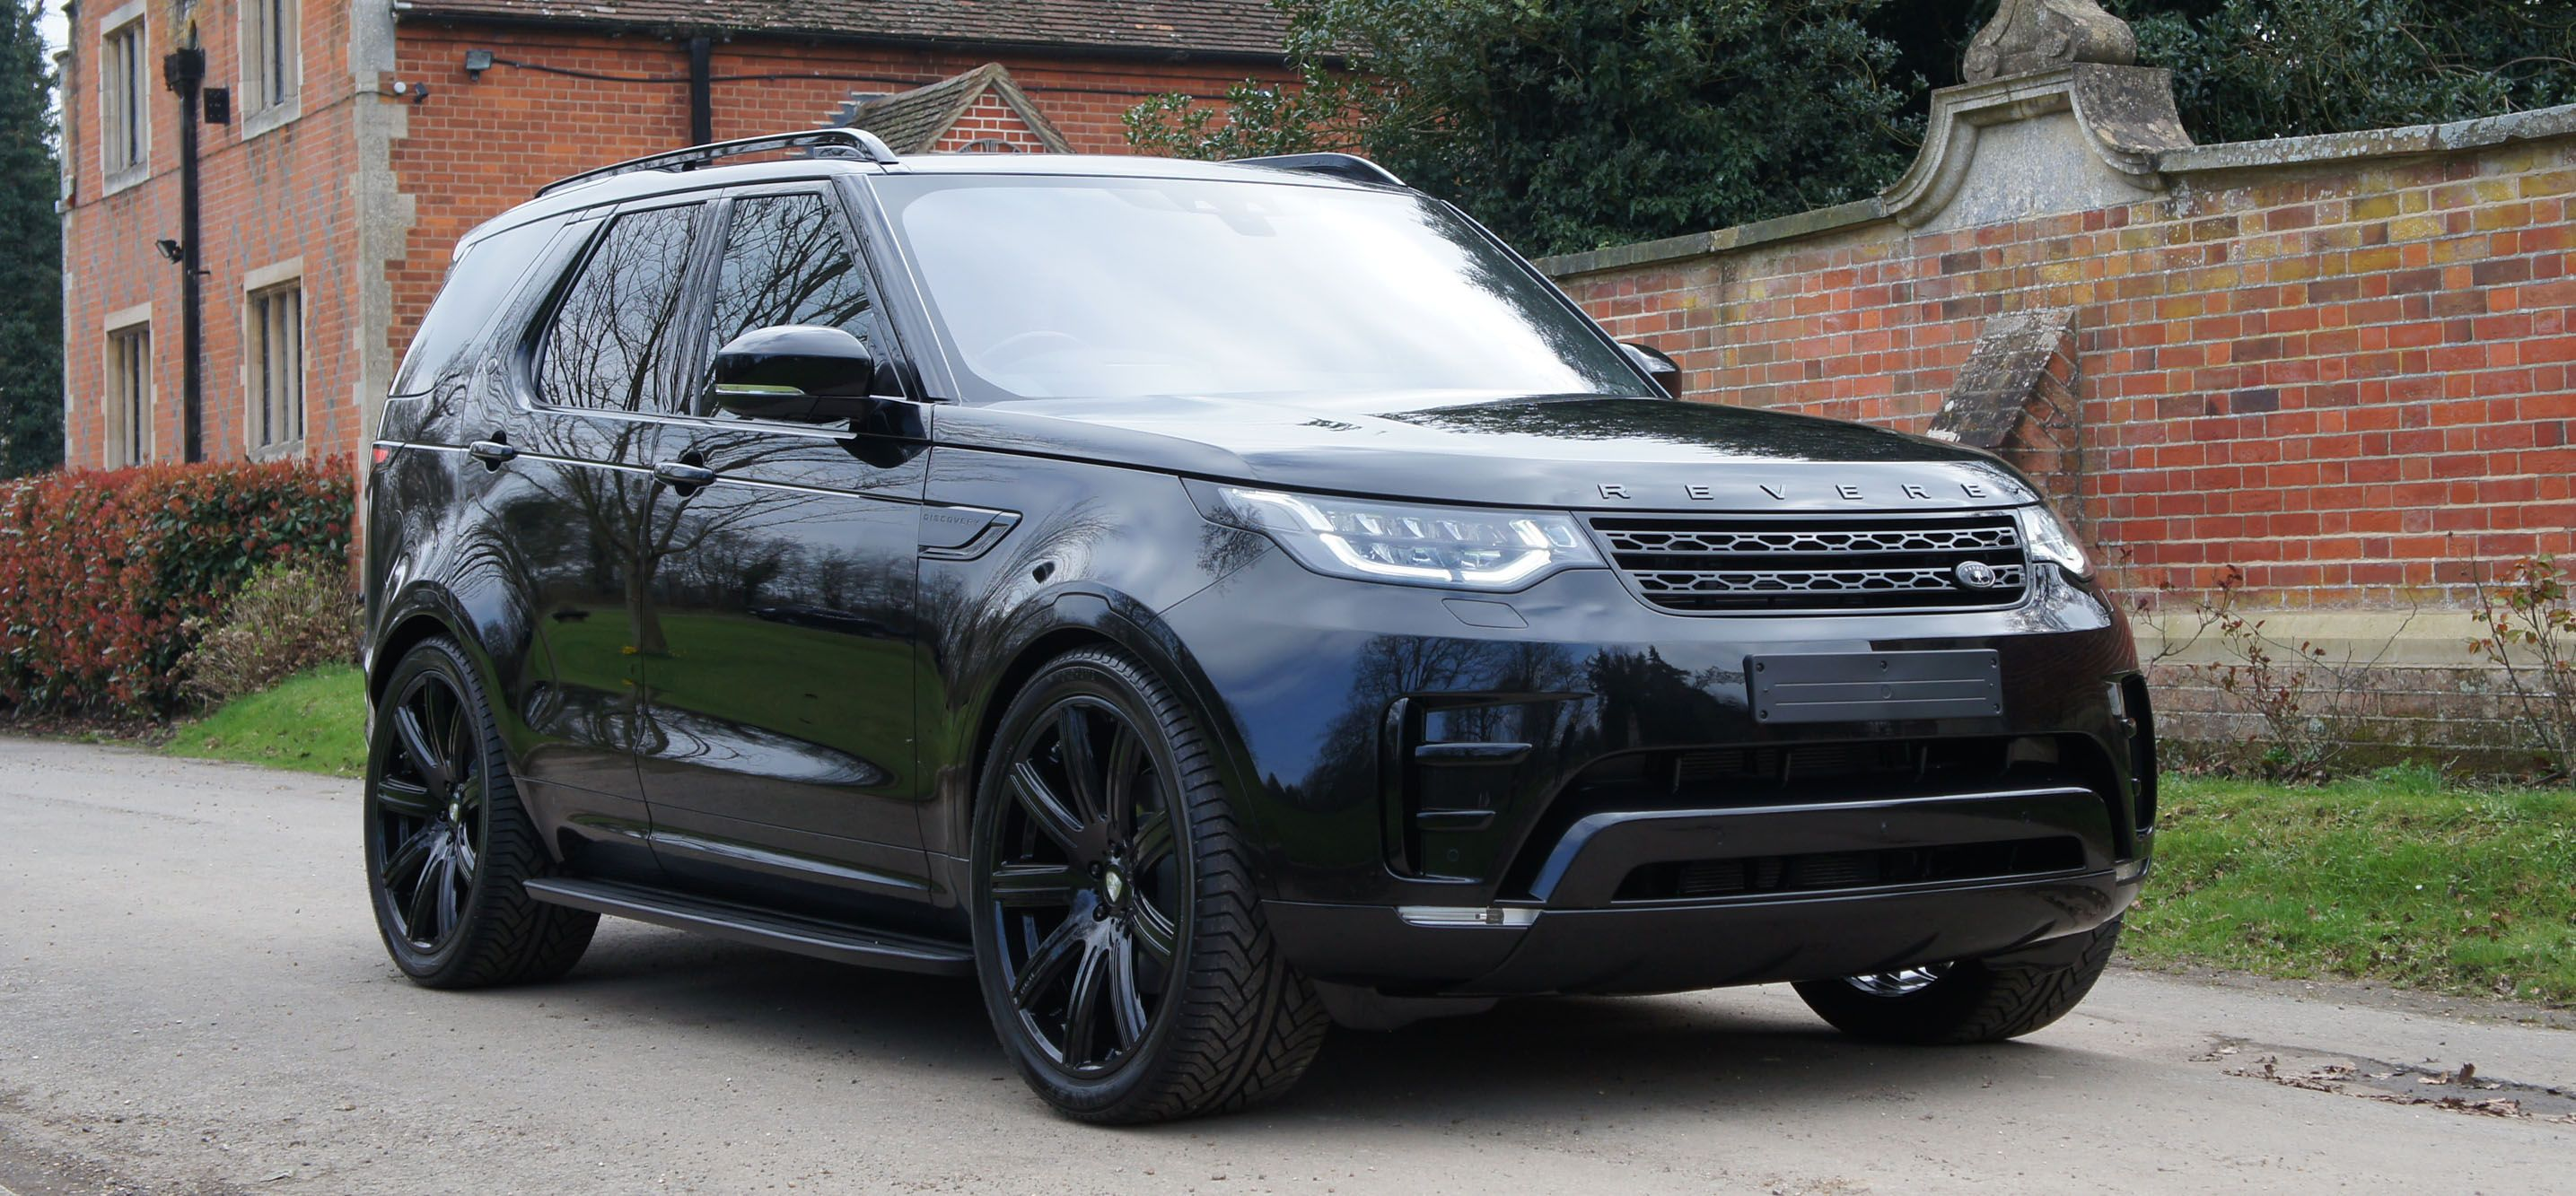 Land rover discovery 5 exterior revere london